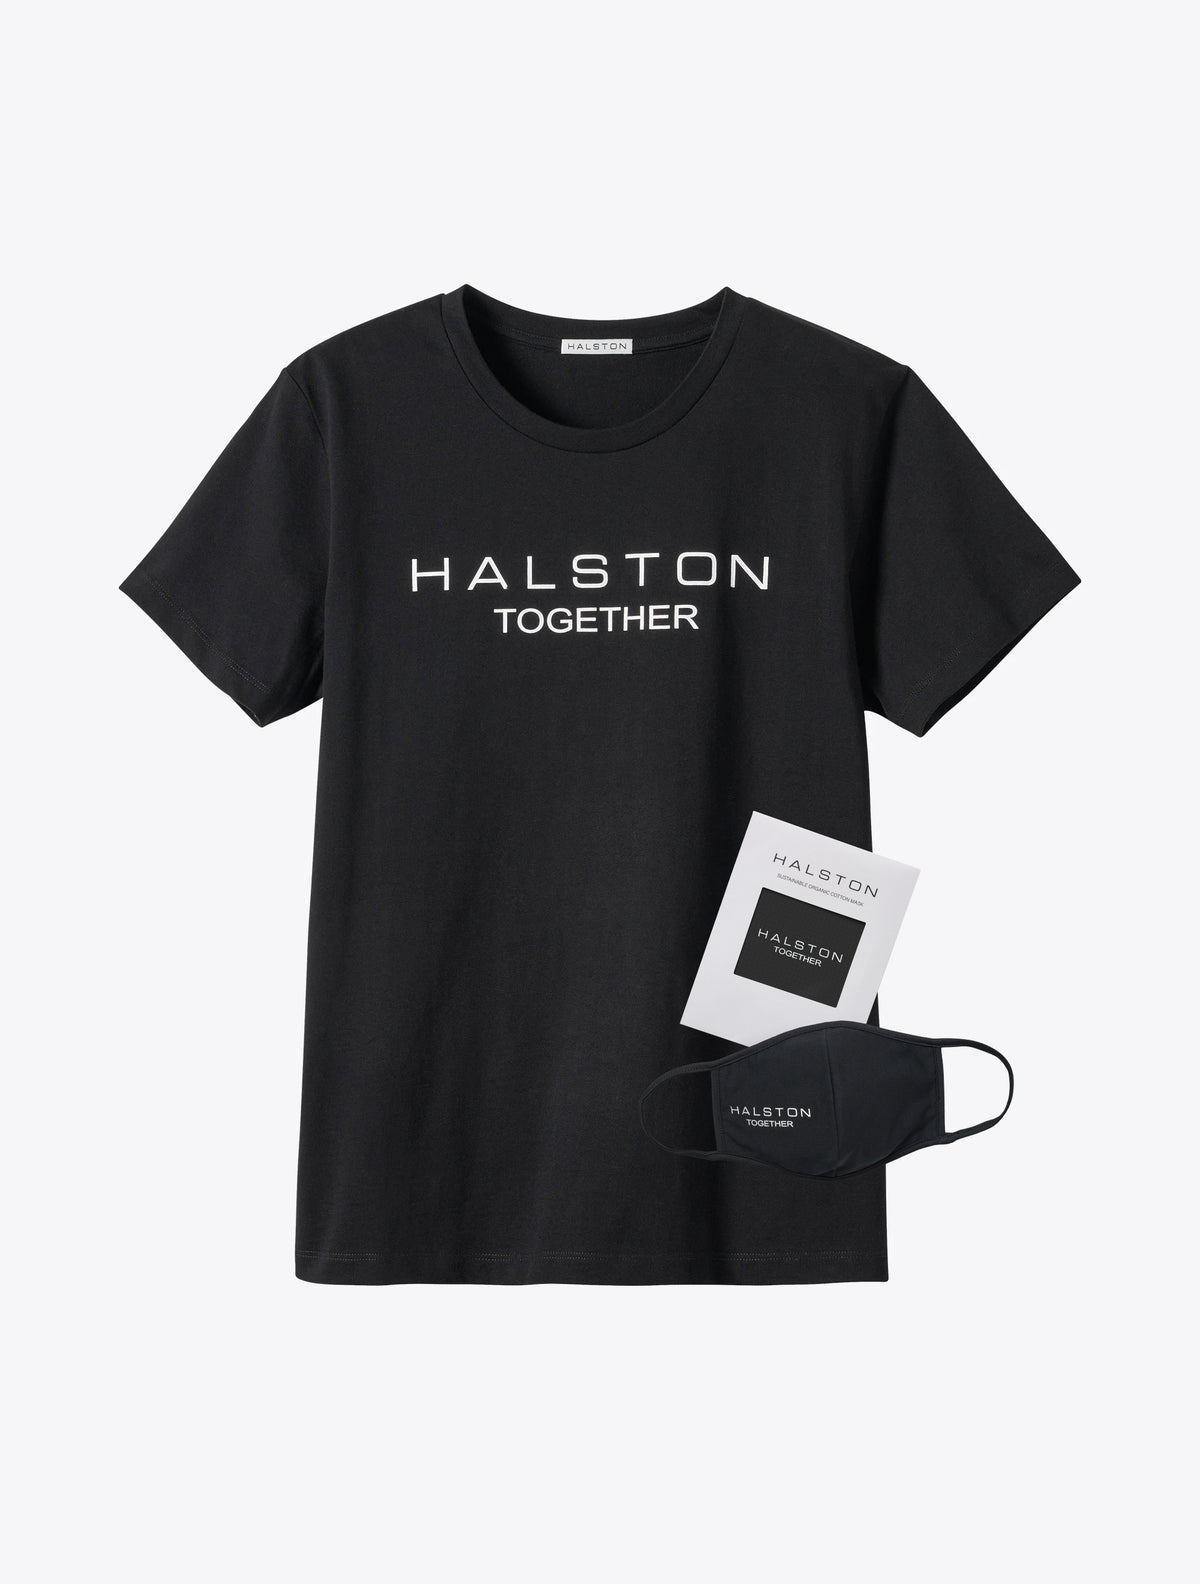 Halston Together Organic Cotton Crew Neck - Black